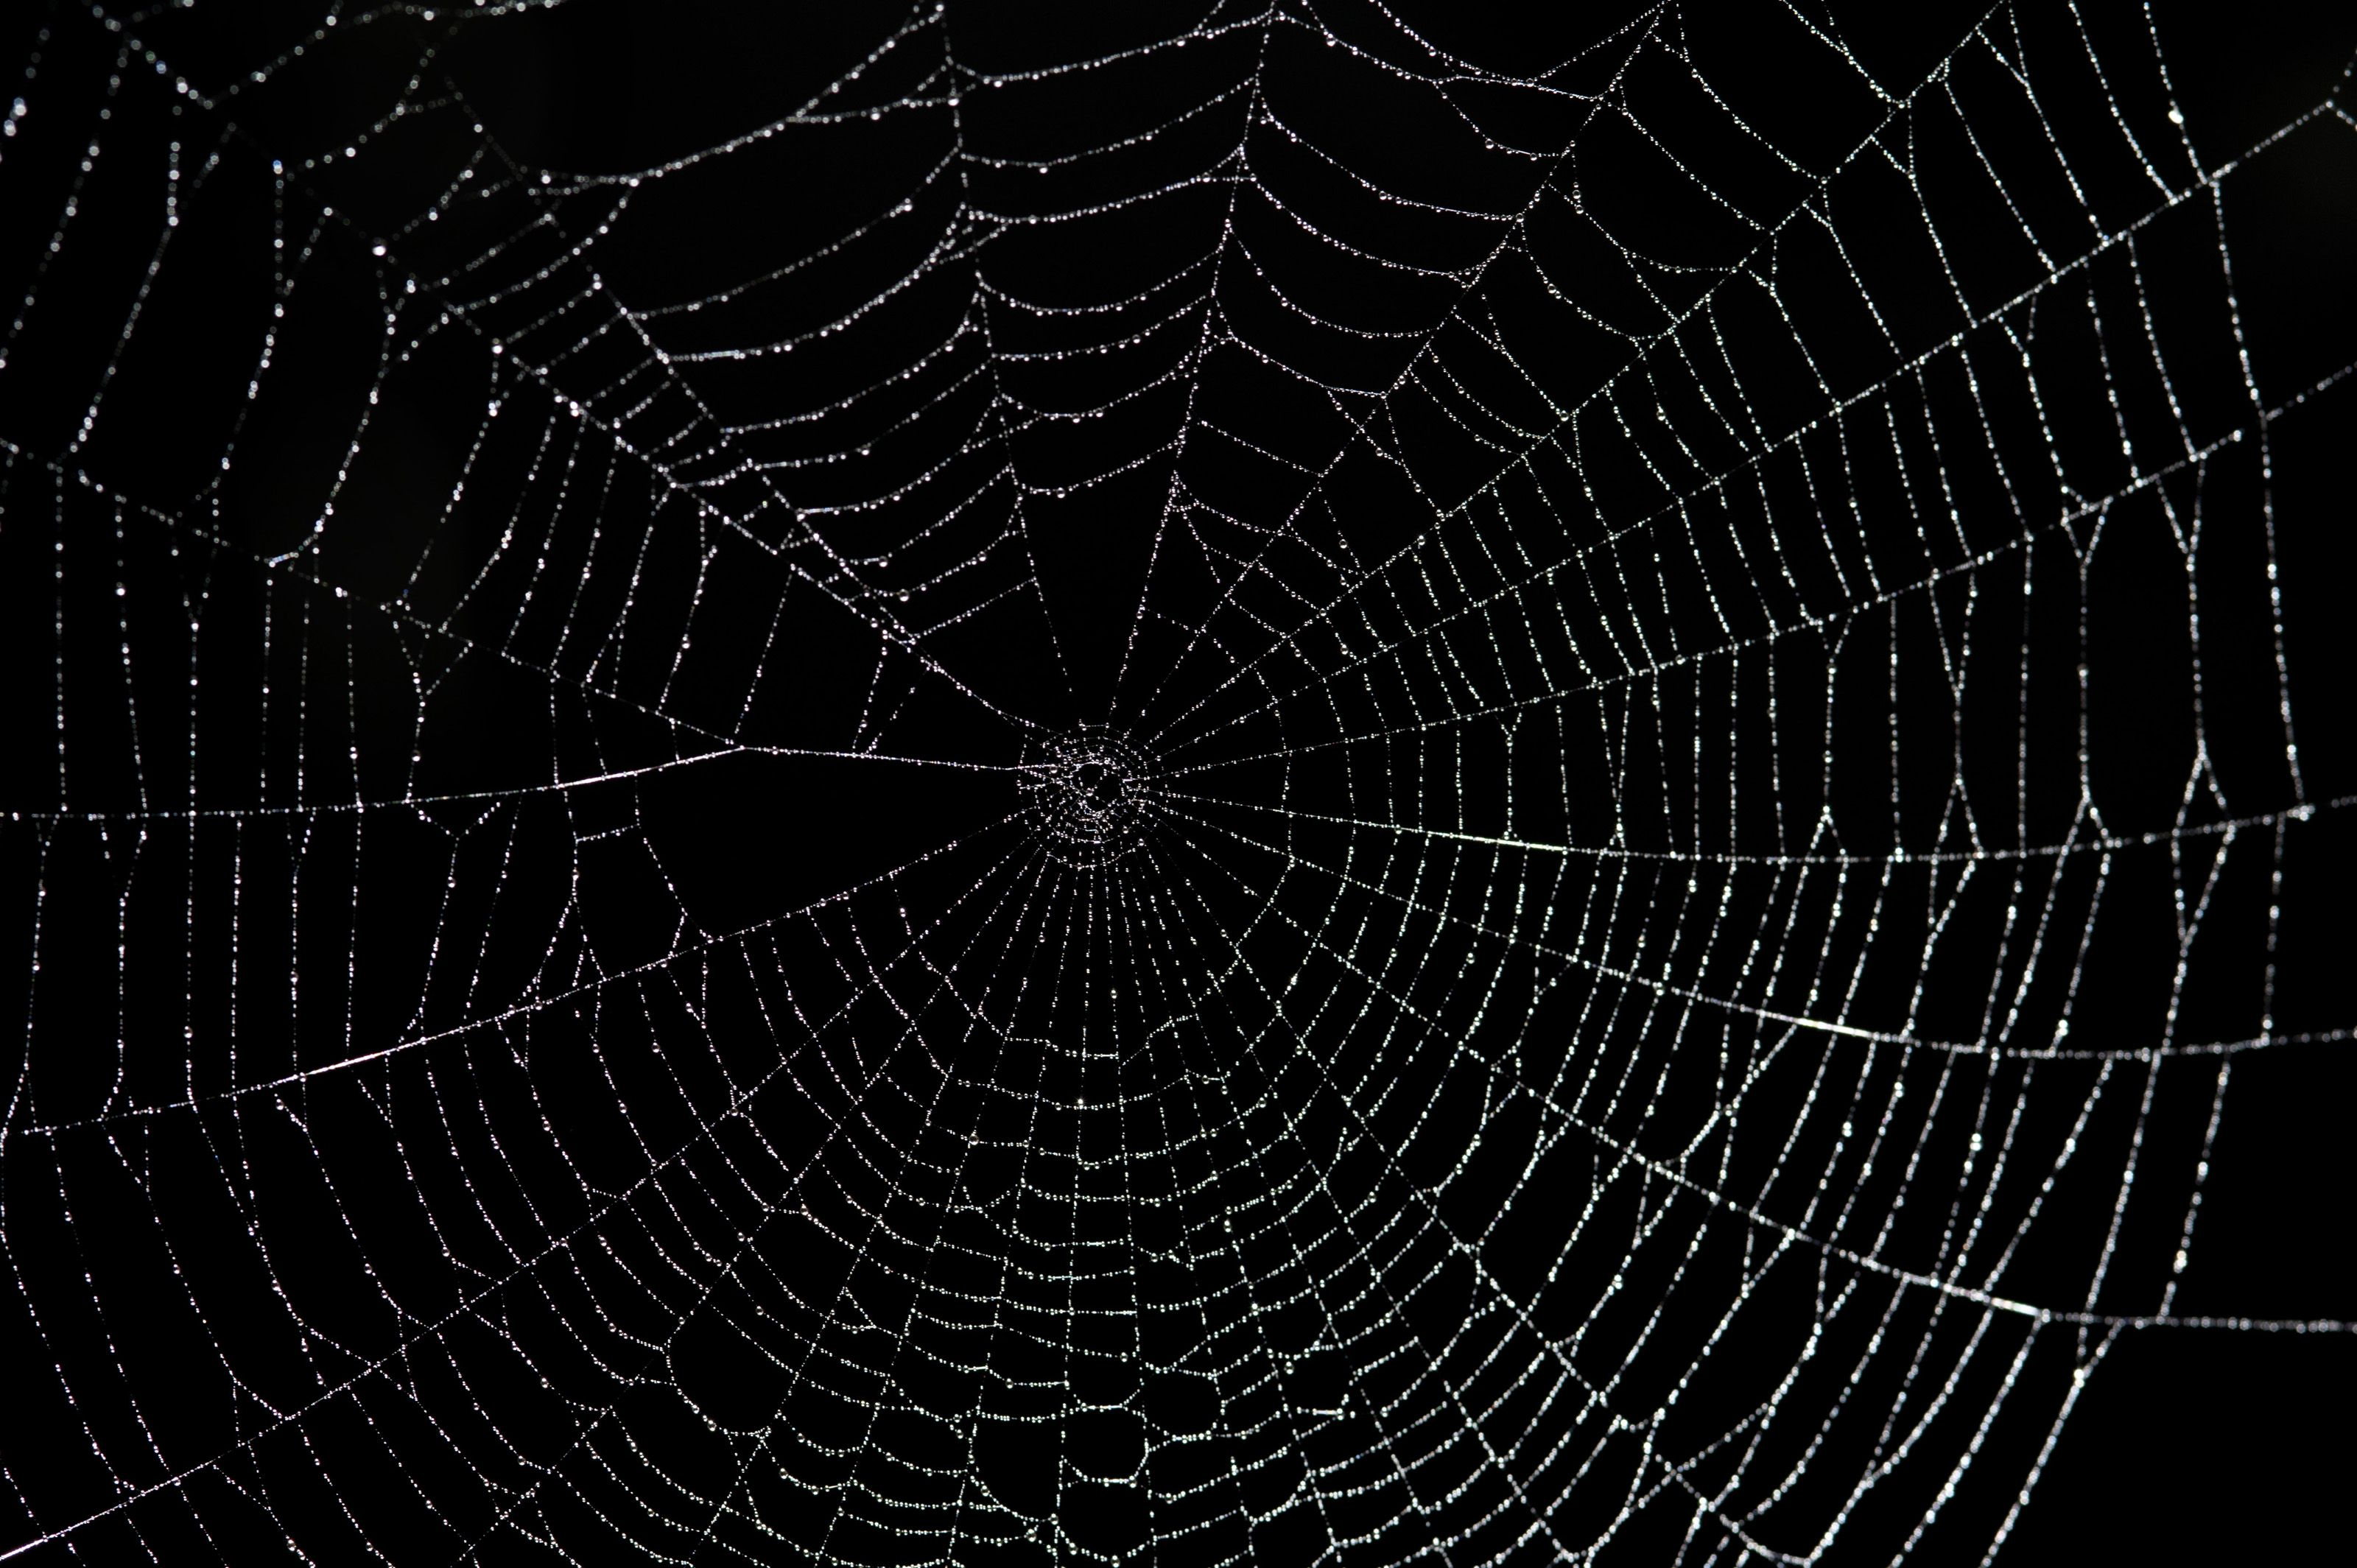 Spiders Web On Black Jpg Jpeg Image 3200 2129 Pixels Scaled 30 Hd Wallpapers For Mac Amazing Hd Wallpapers Spider Web